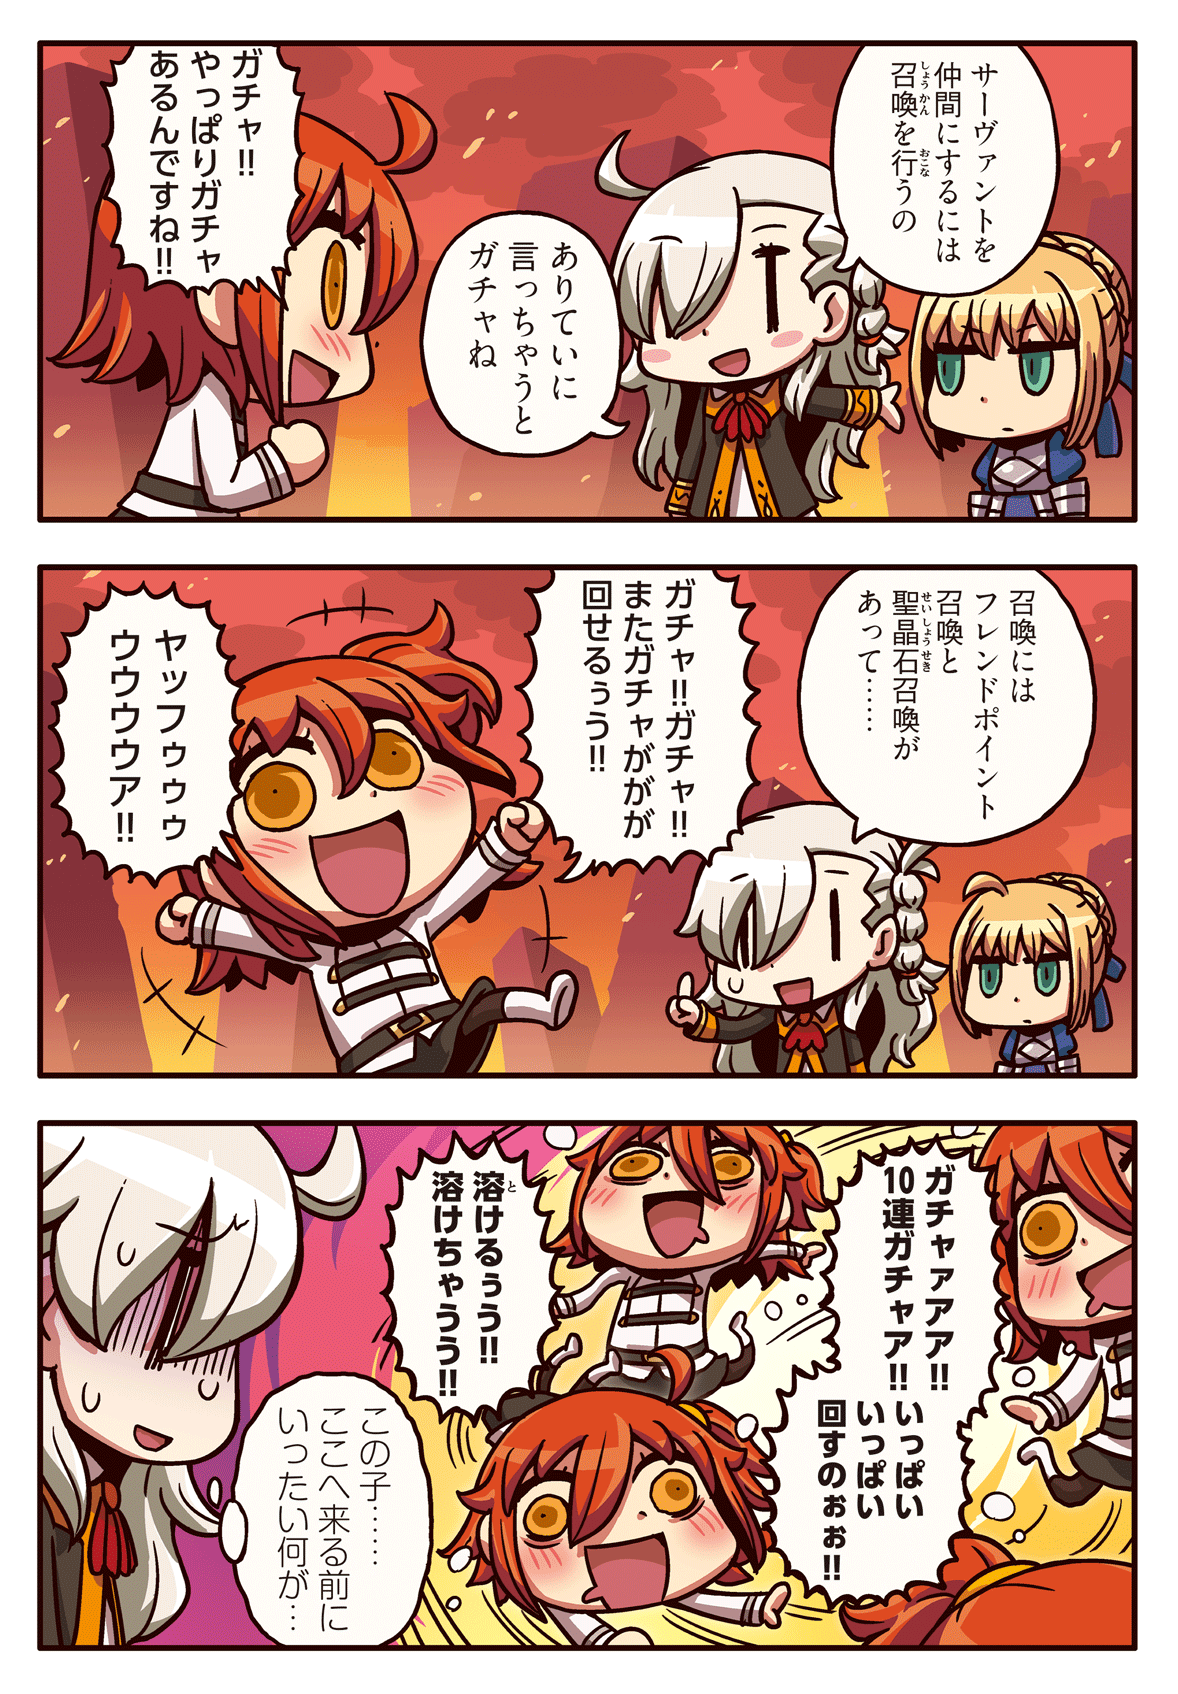 Fate/Grand Order まったりスレ757 [無断転載禁止]©2ch.net->画像>136枚